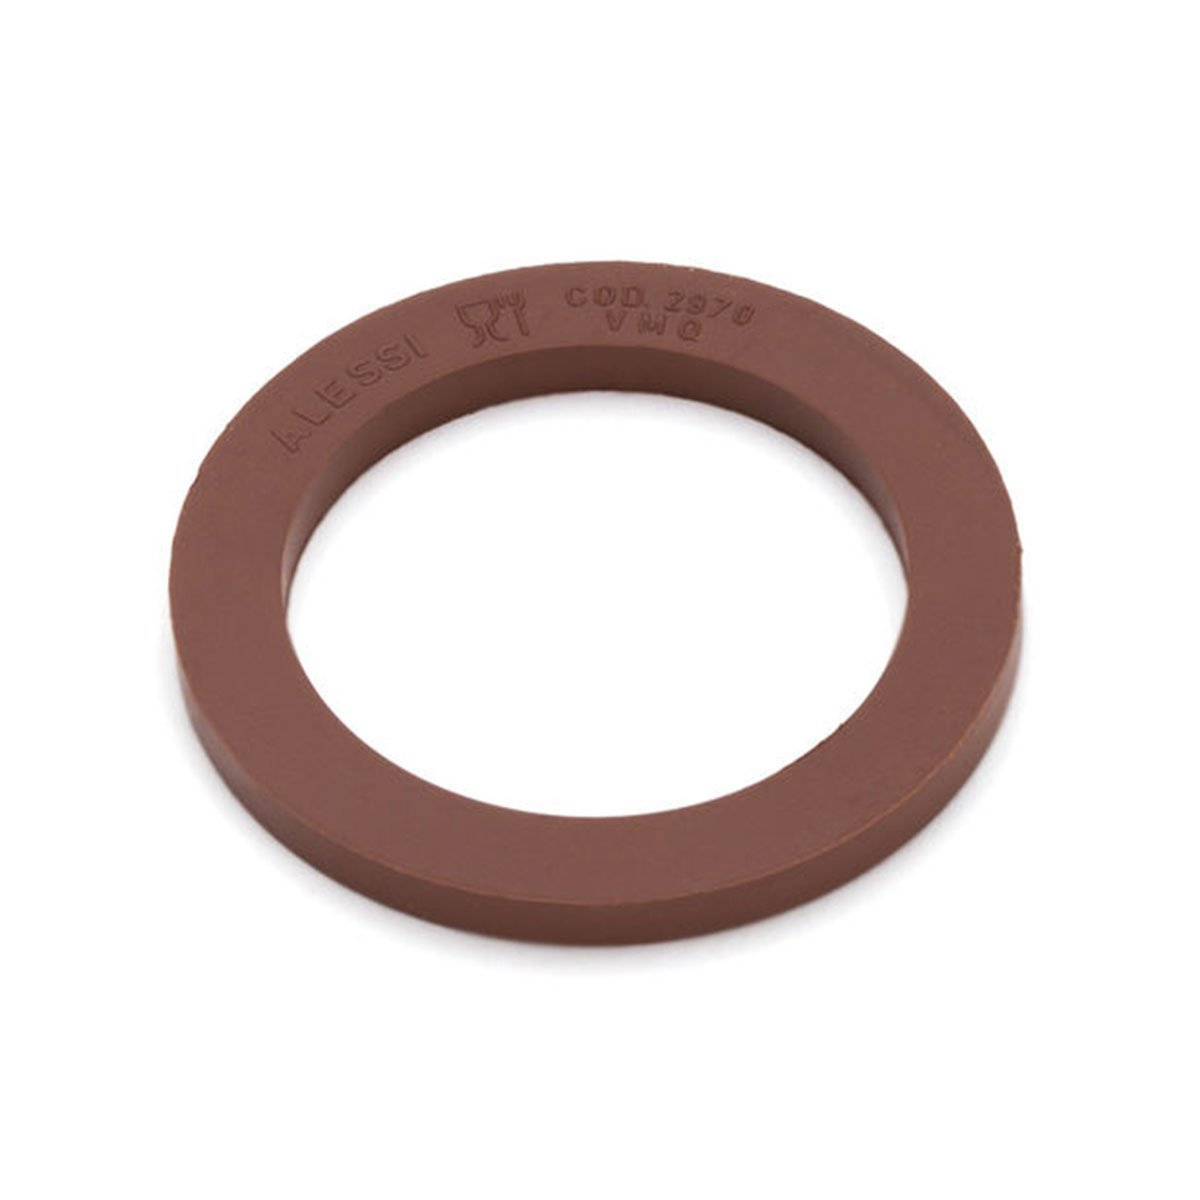 Alessi – 9090 Rubber Seal For 9090 Magnum AL29706